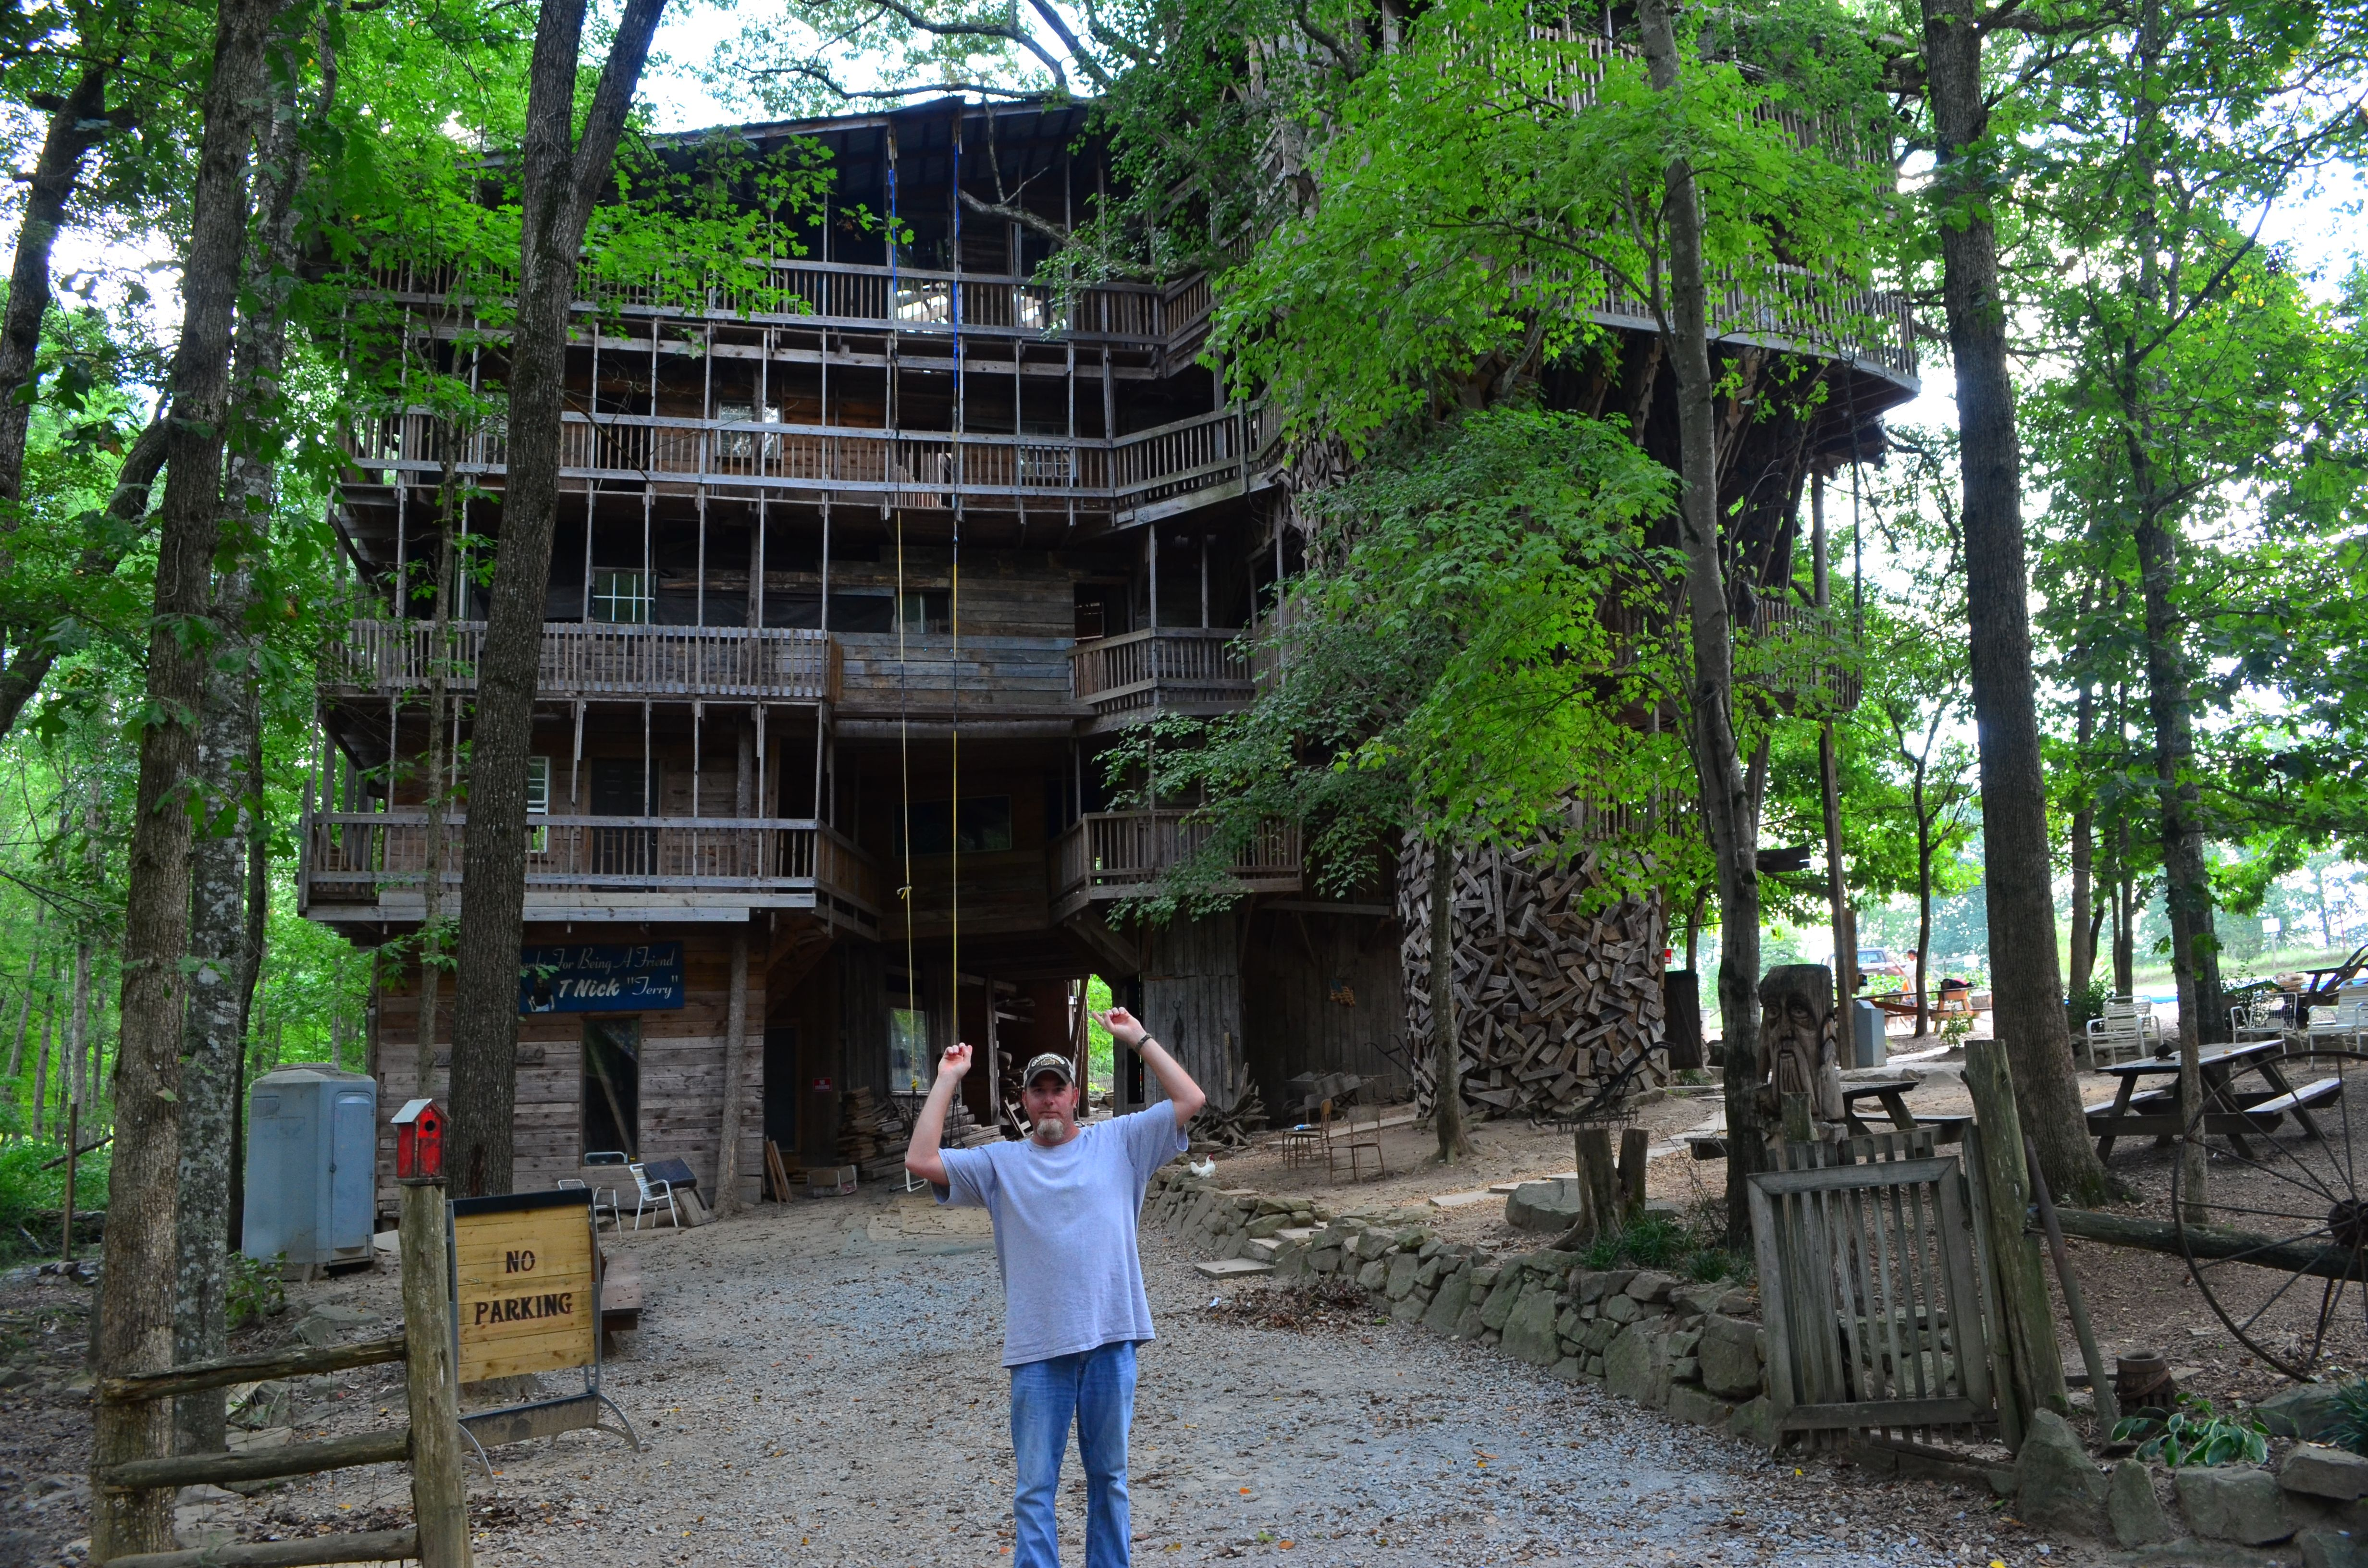 Worlds largest treehouse beautiful tennessee pinterest - Biggest treehouse in the world ...